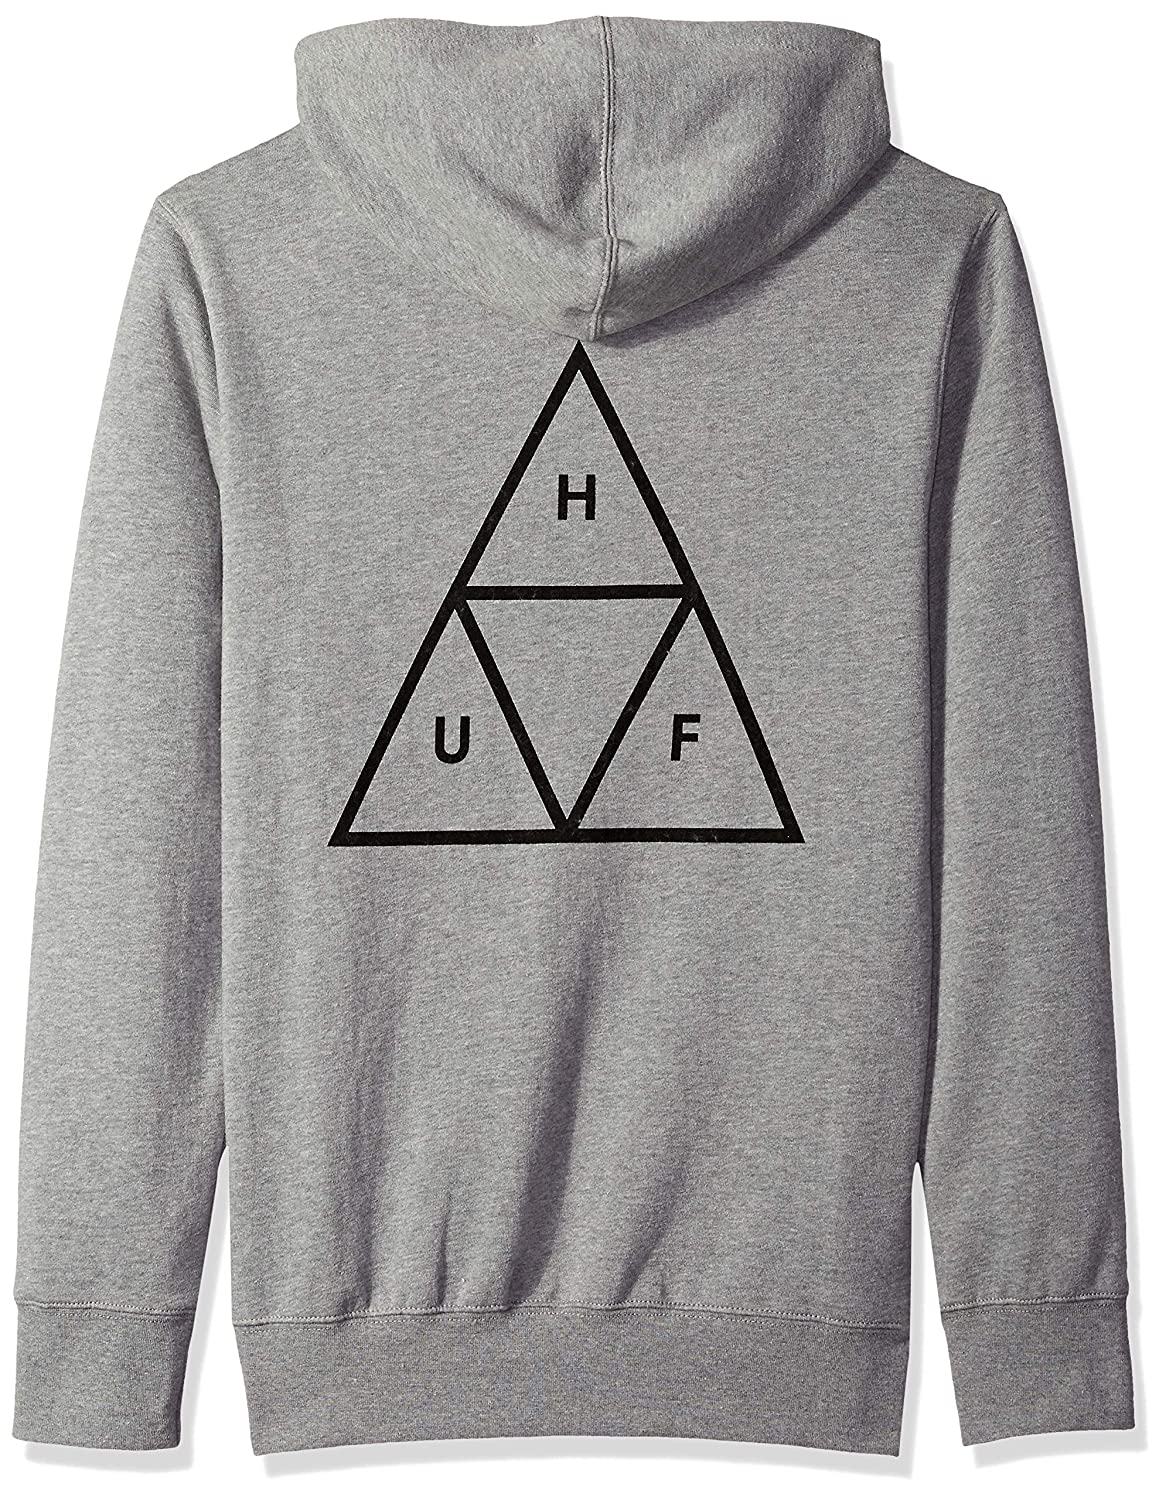 HUF Triple Triangle Sudadera con Capucha Grey Heather: Amazon.es: Ropa y accesorios